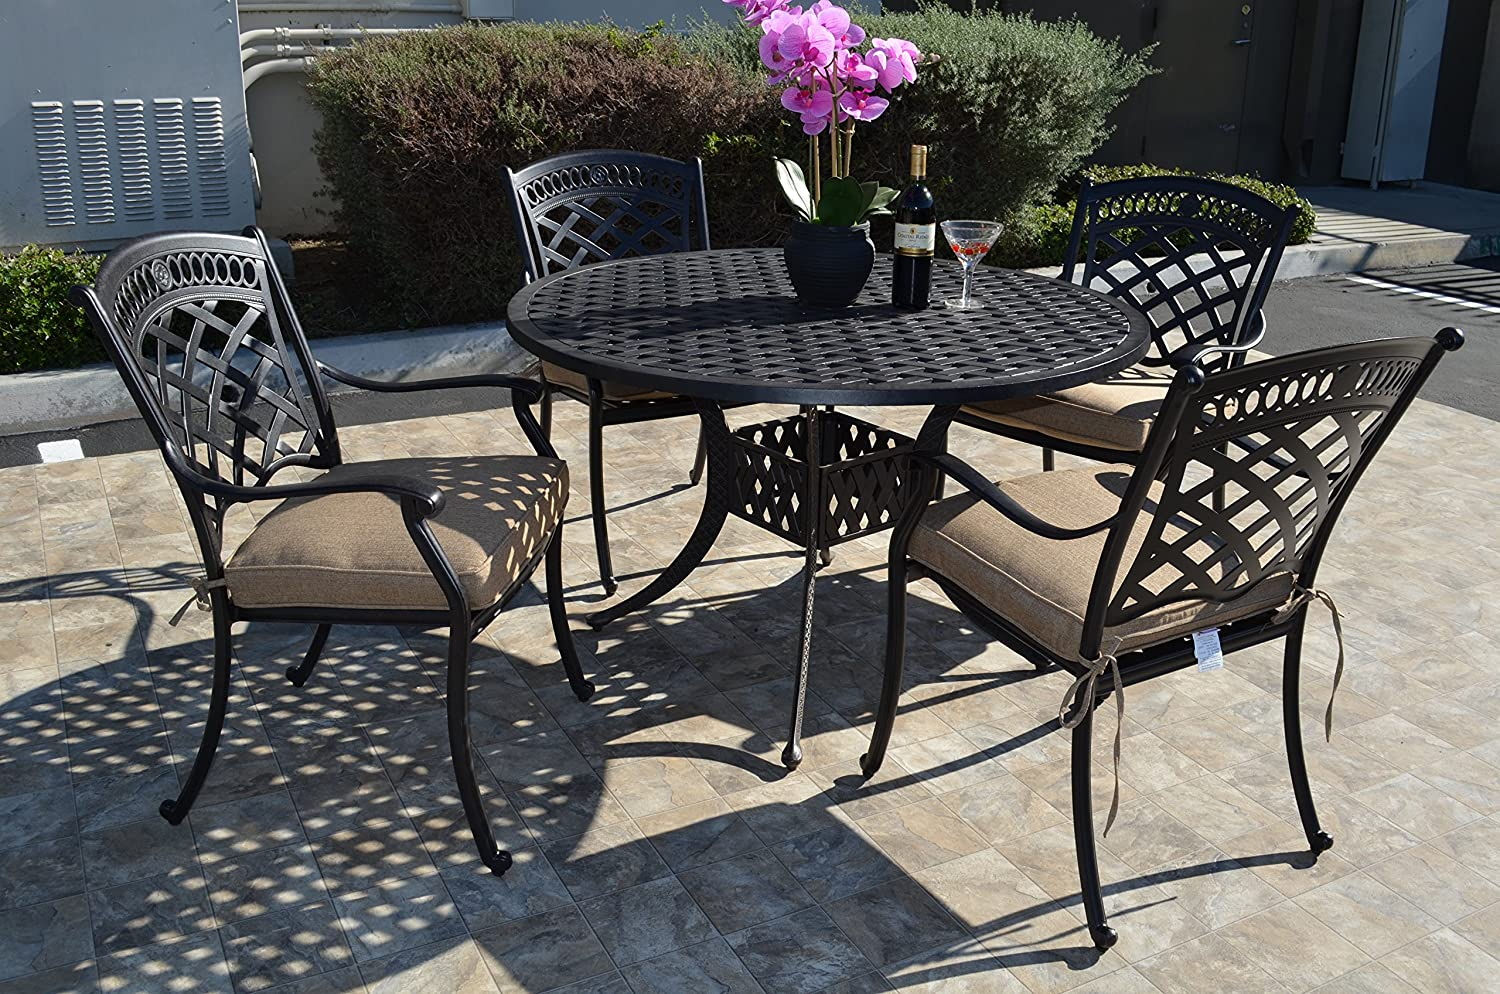 Amazon com st augustine cast aluminum powder coated 5pc outdoor patio dining set with 48 round table with sunbrella cushions antique bronze garden